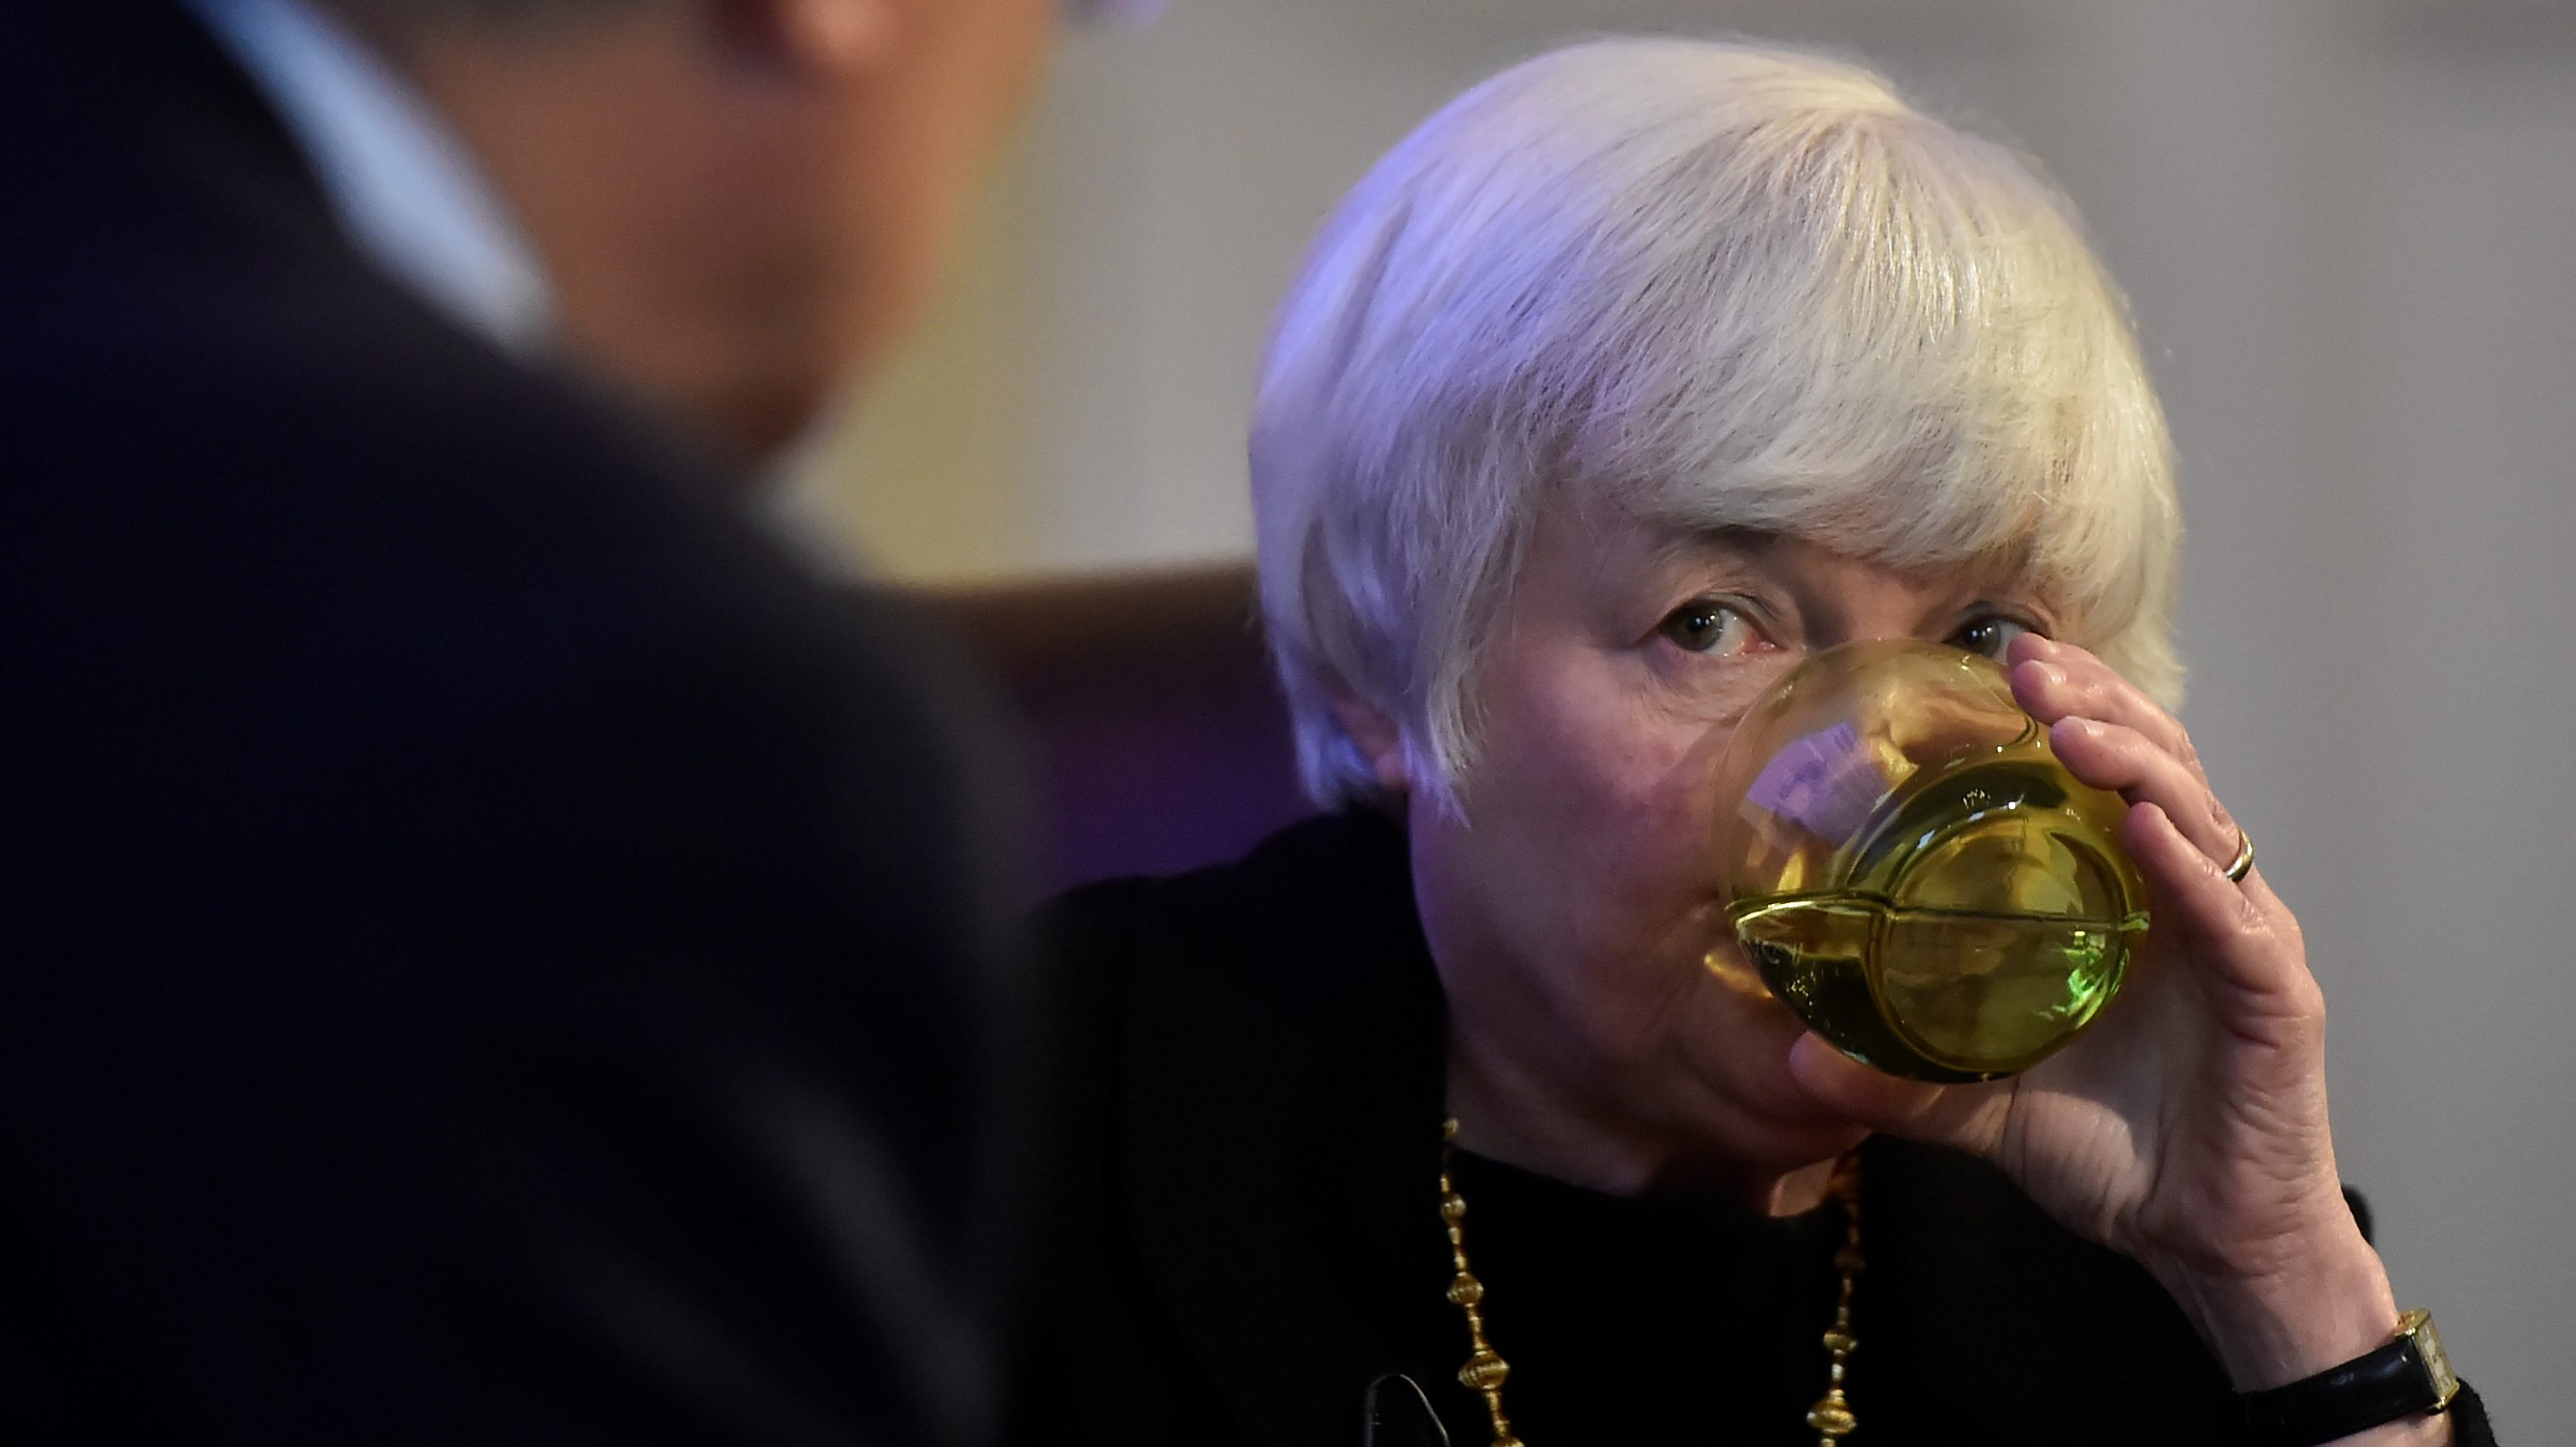 The Federal Reserve Board Chairwoman Janet Yellen sips water as she speaks during a discussion at The British Academy President's Lecture in London, Britain, June 27, 2017.